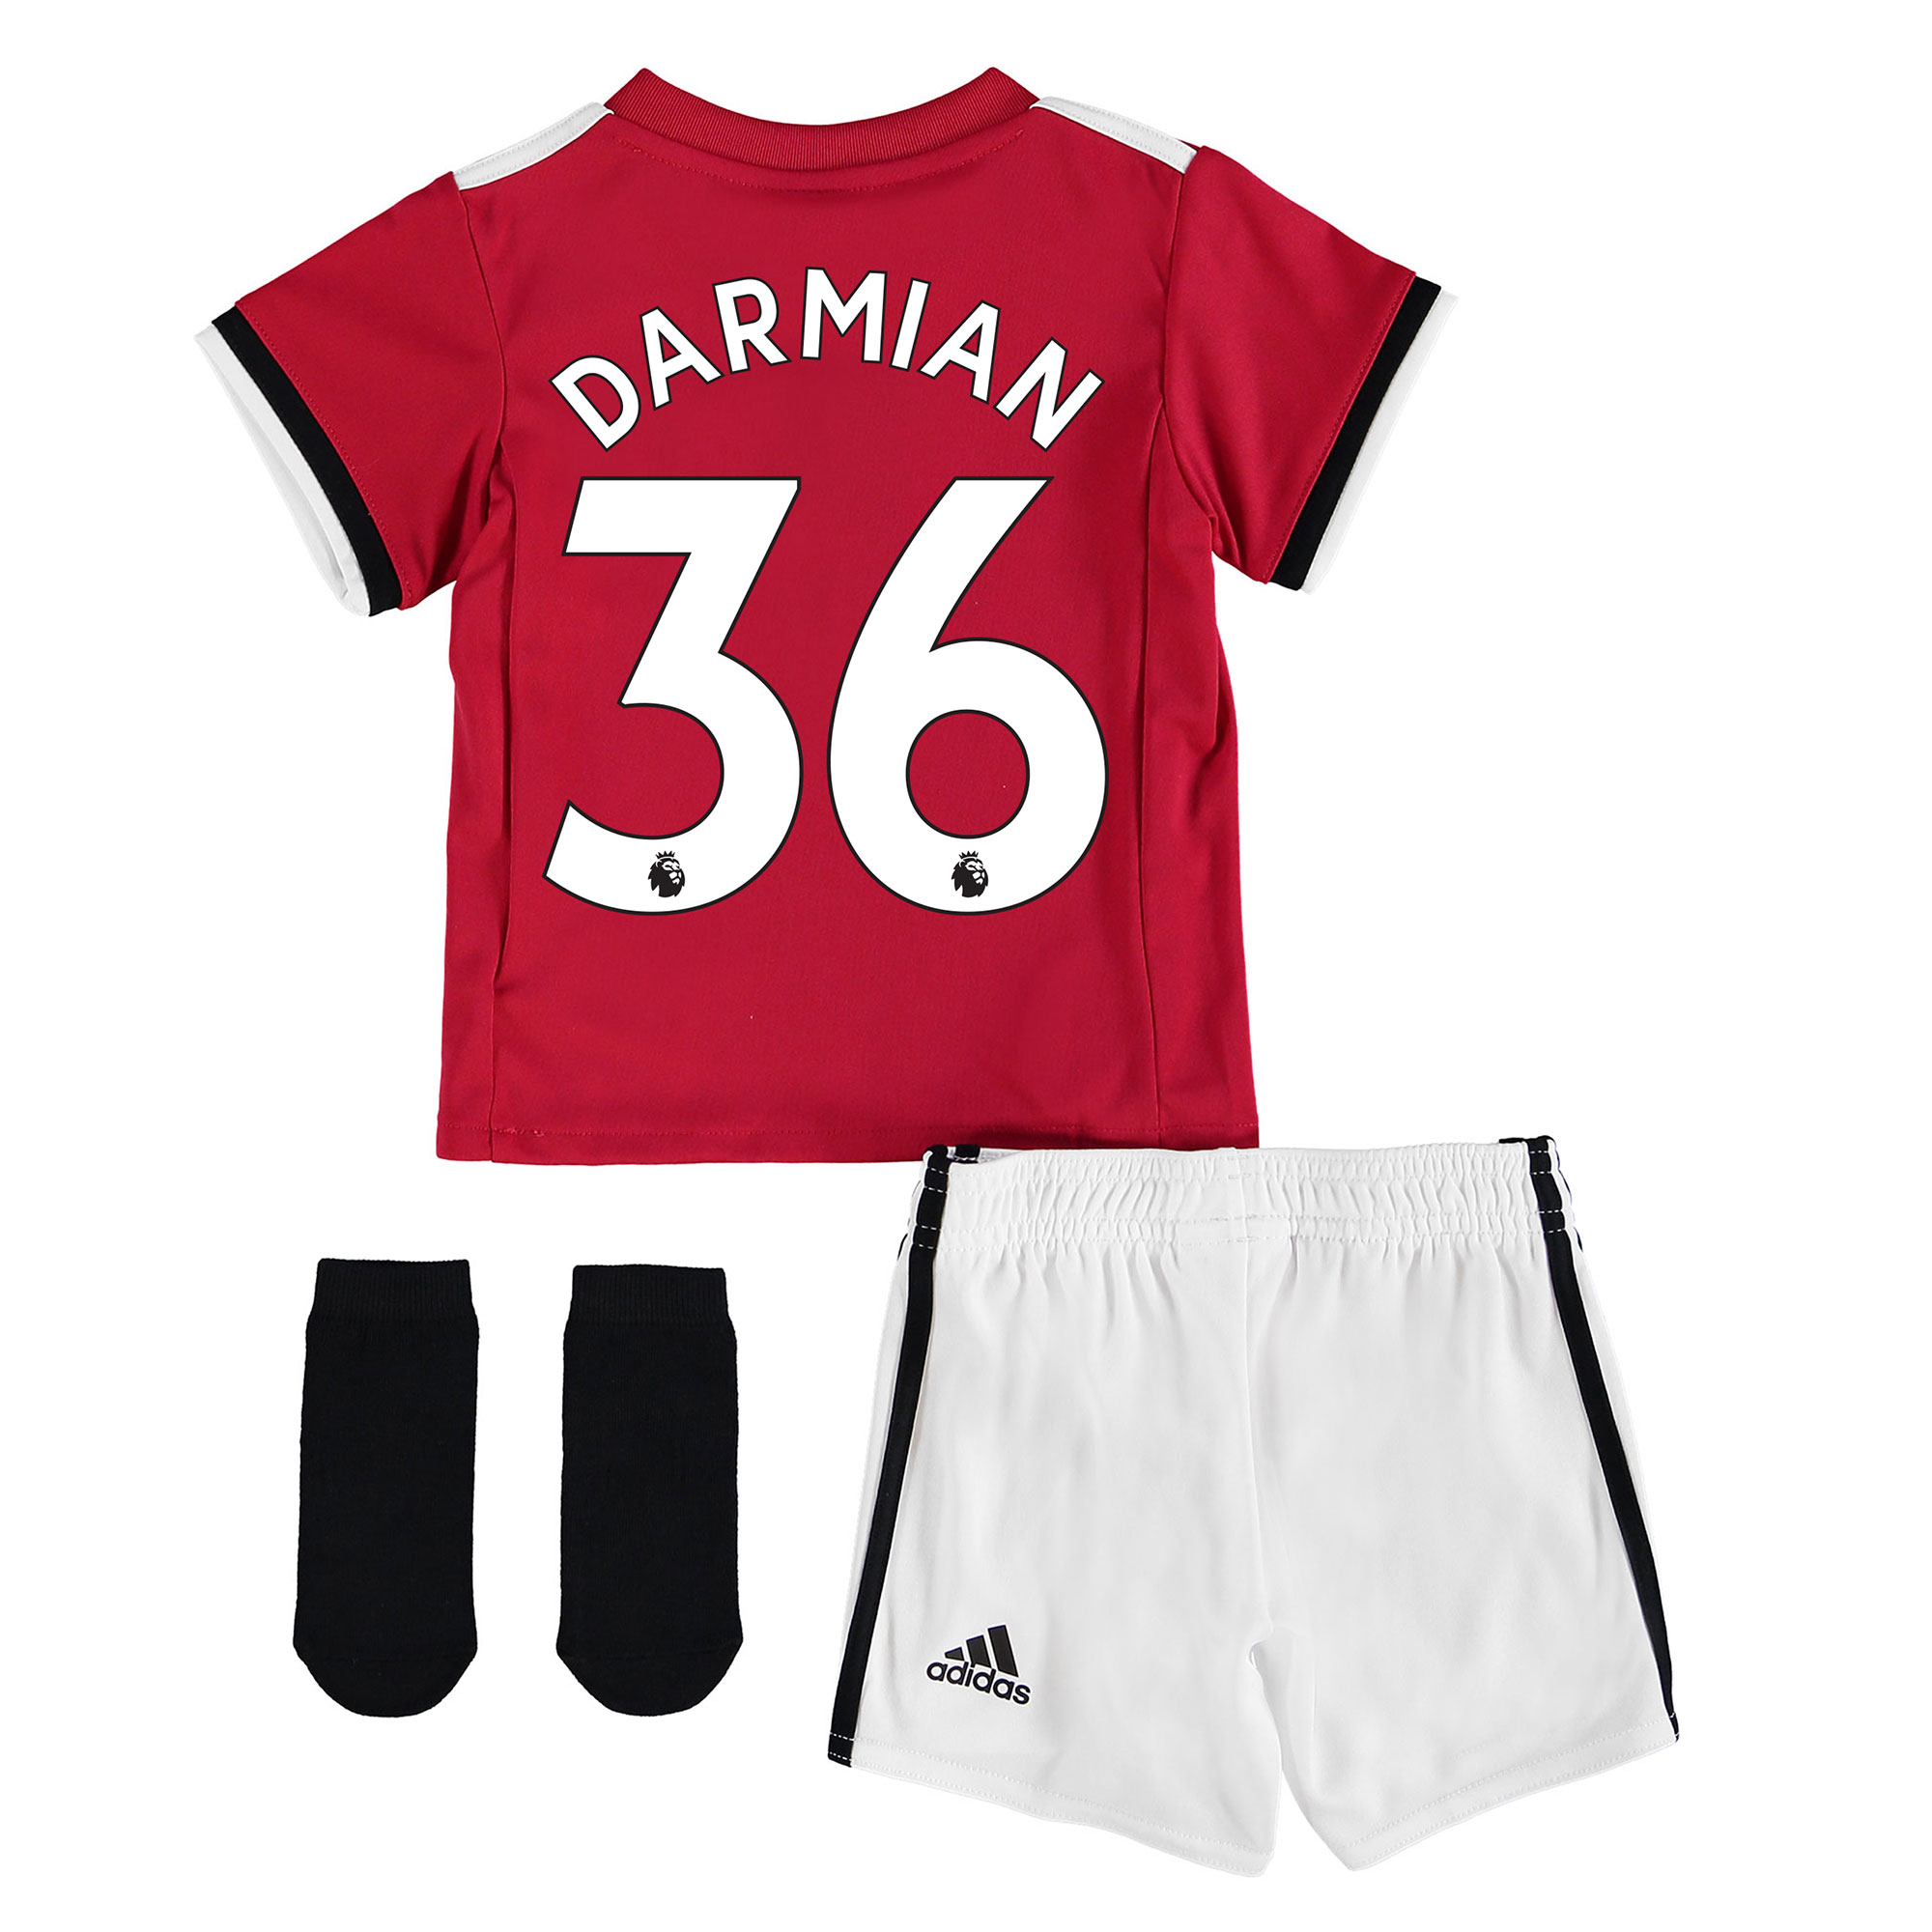 Manchester United Home Baby Kit 2017-18 with Darmian 36 printing